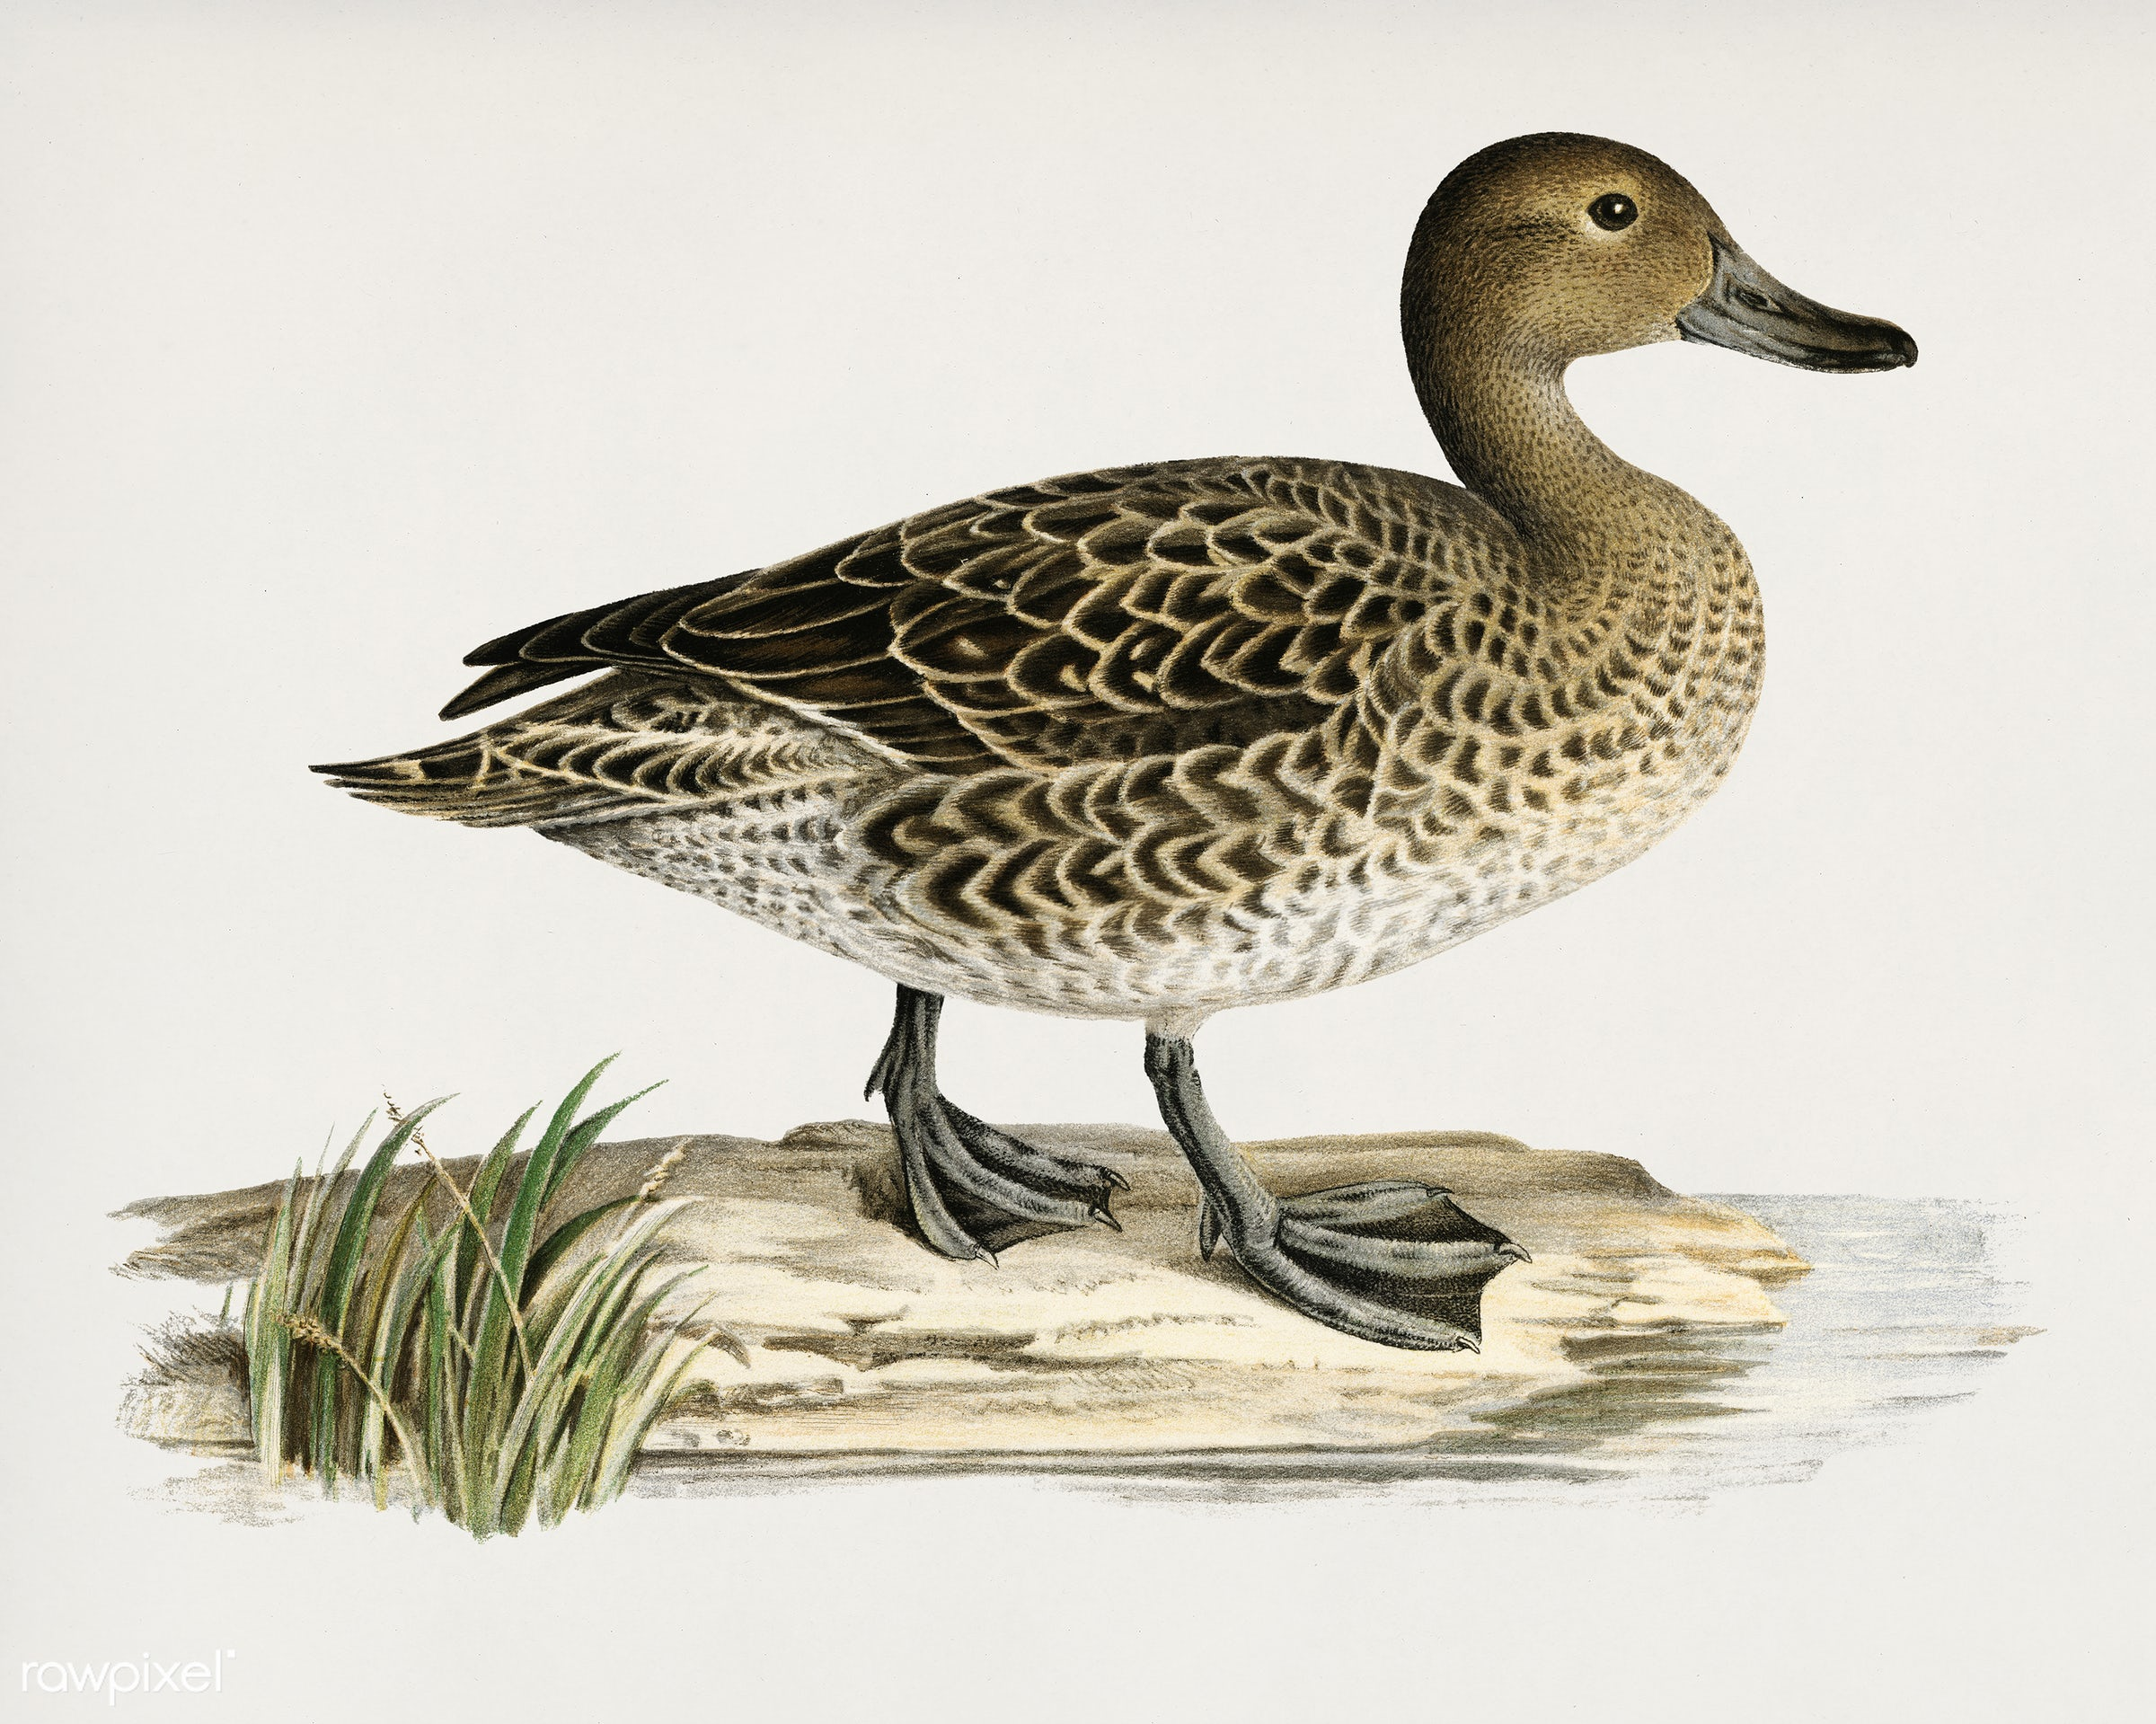 Pintail (Anas acuta) illustrated by the von Wright brothers. Digitally enhanced from our own 1929 folio version of Svenska F...